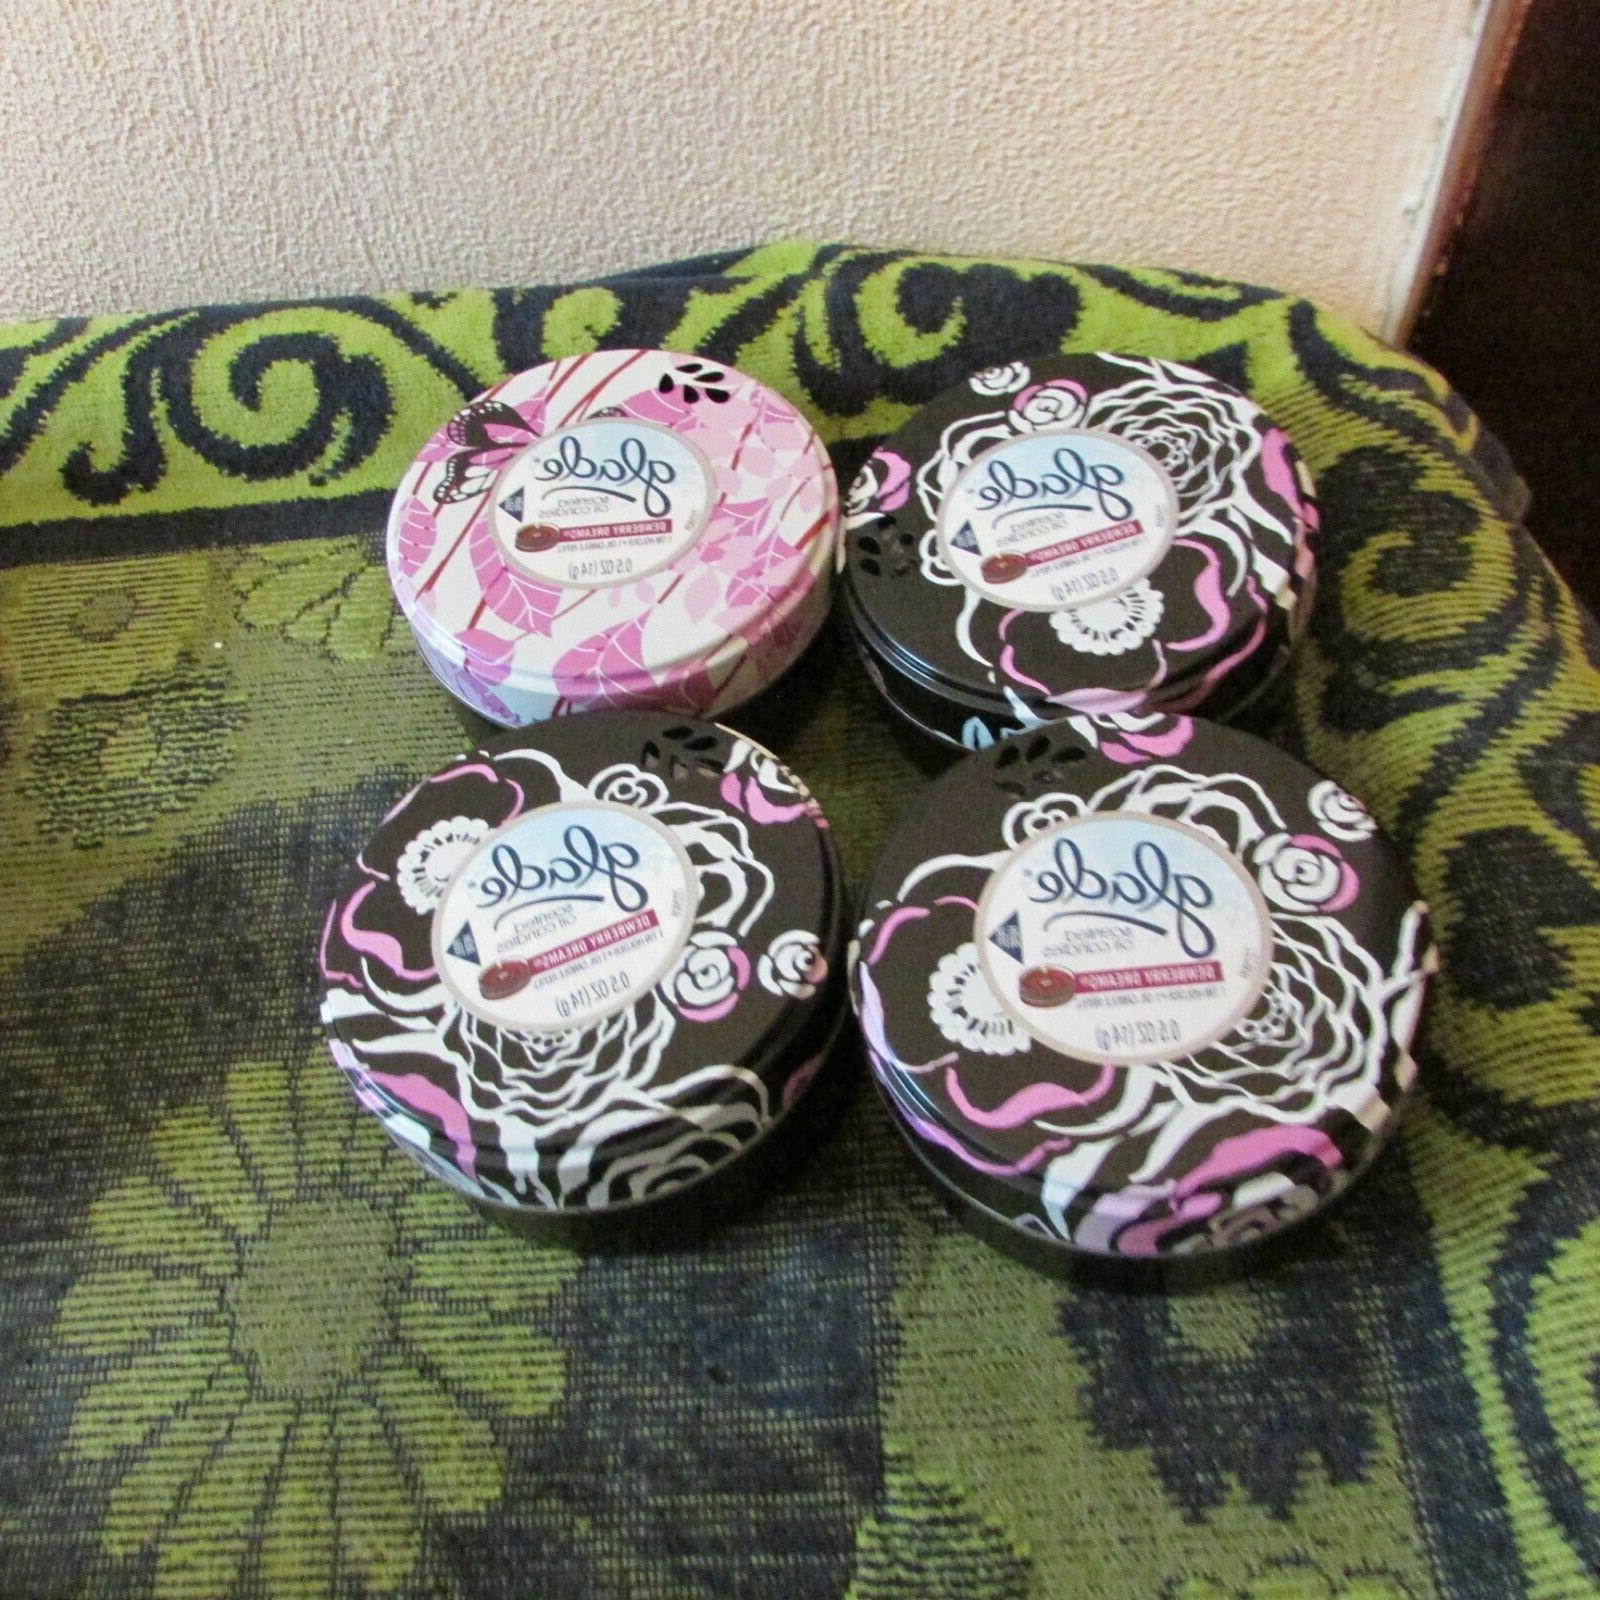 new lot of 4 candles in reusable